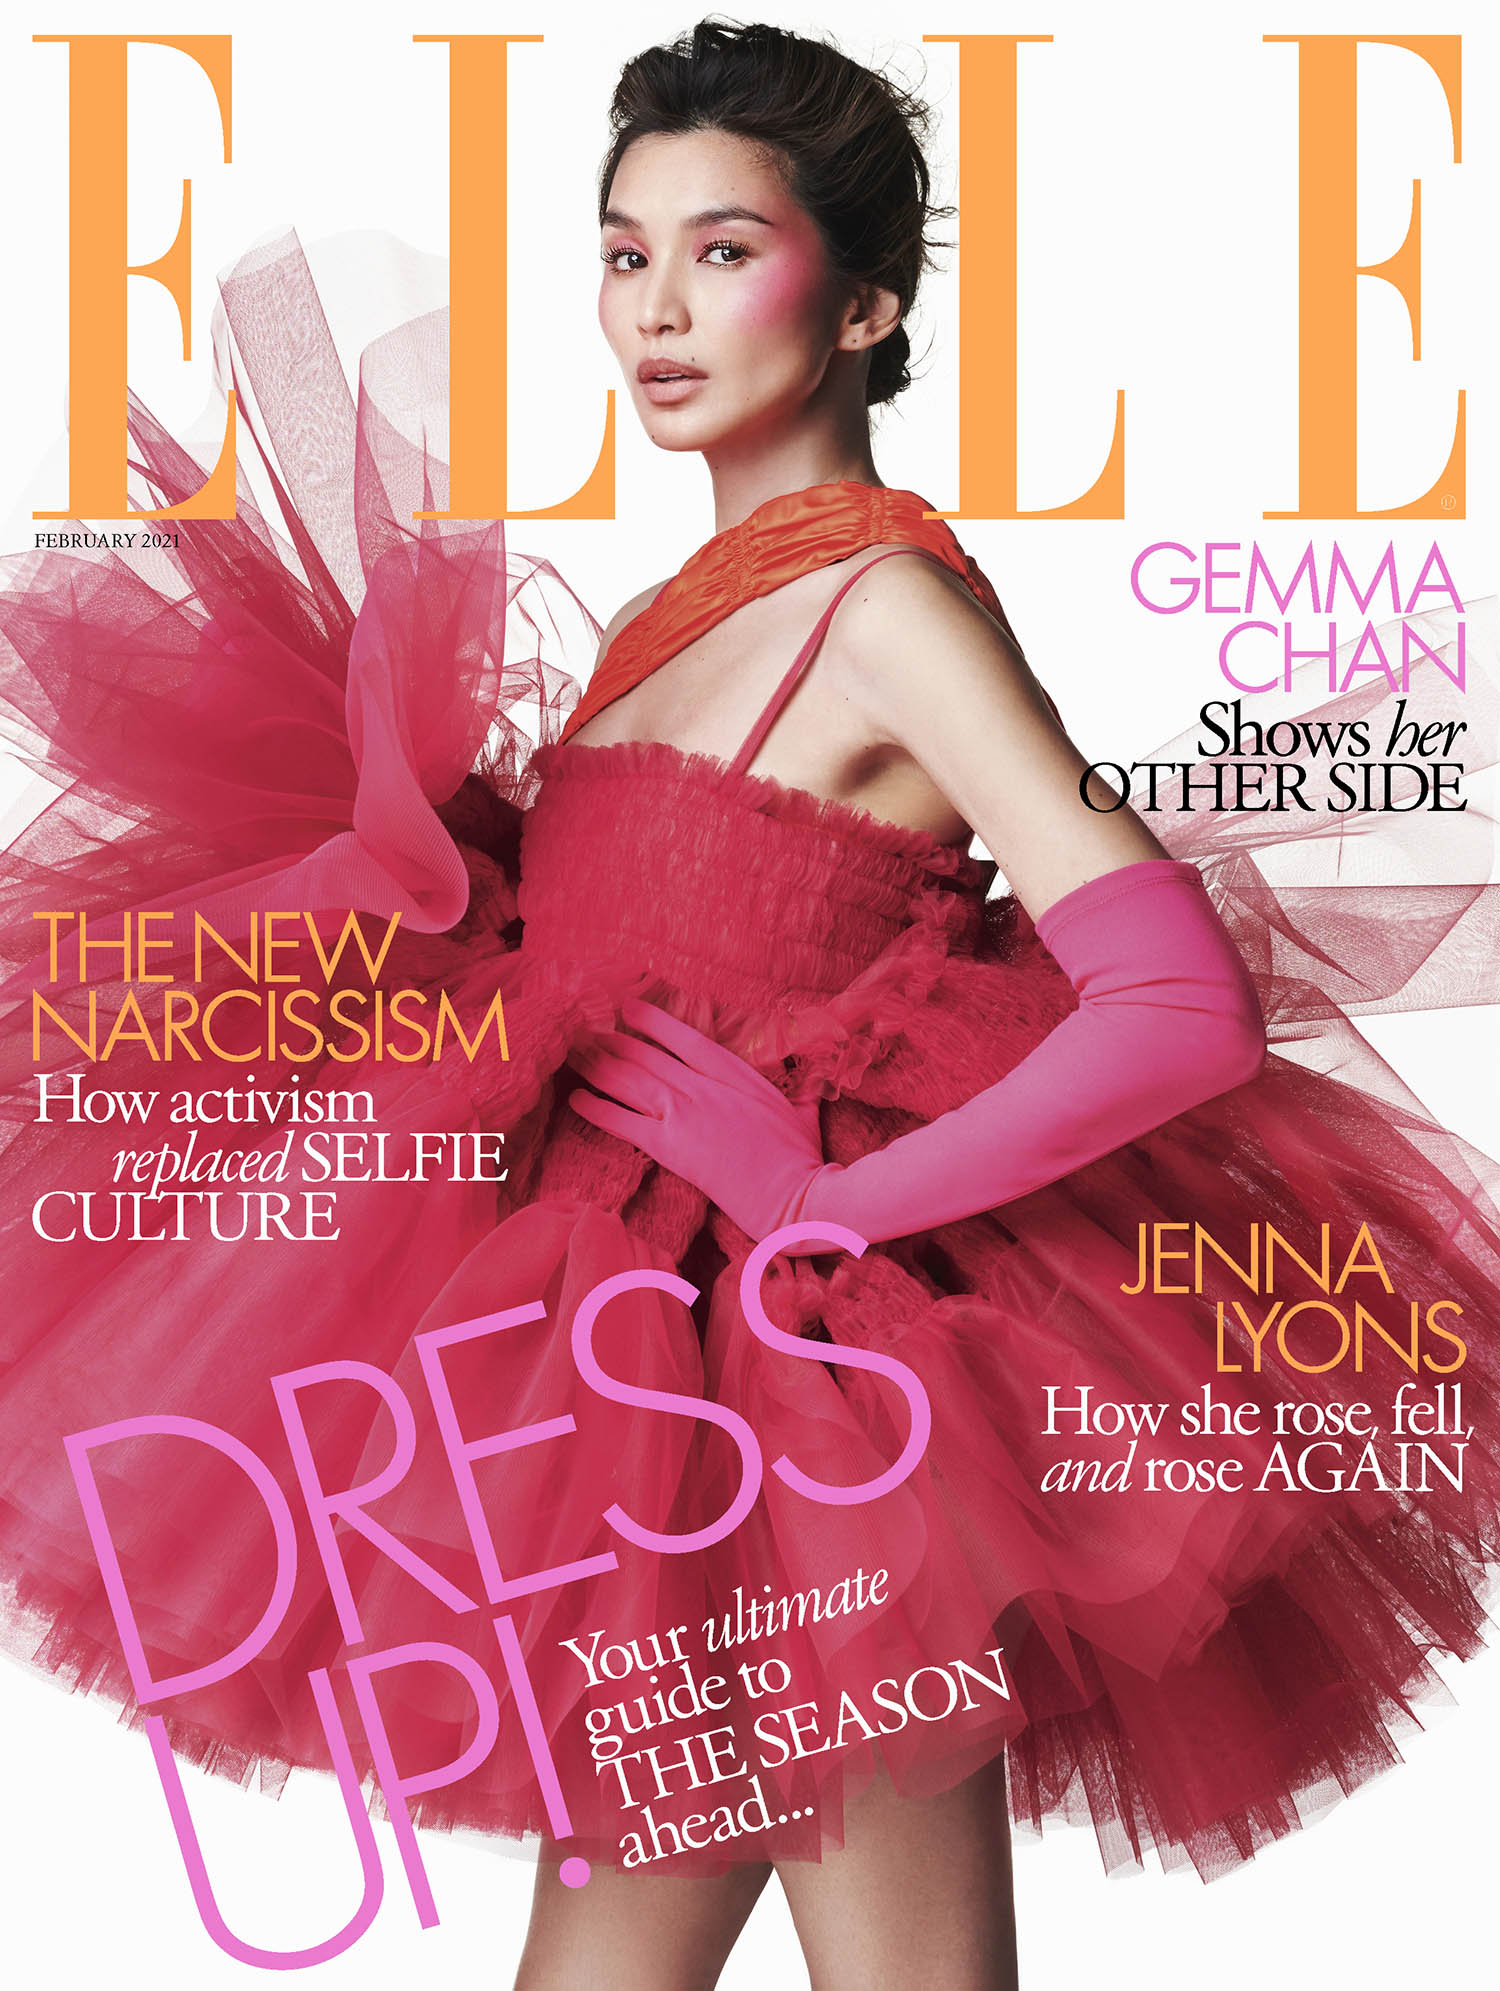 Gemma Chan covers Elle UK February 2021 by Marcin Kempski